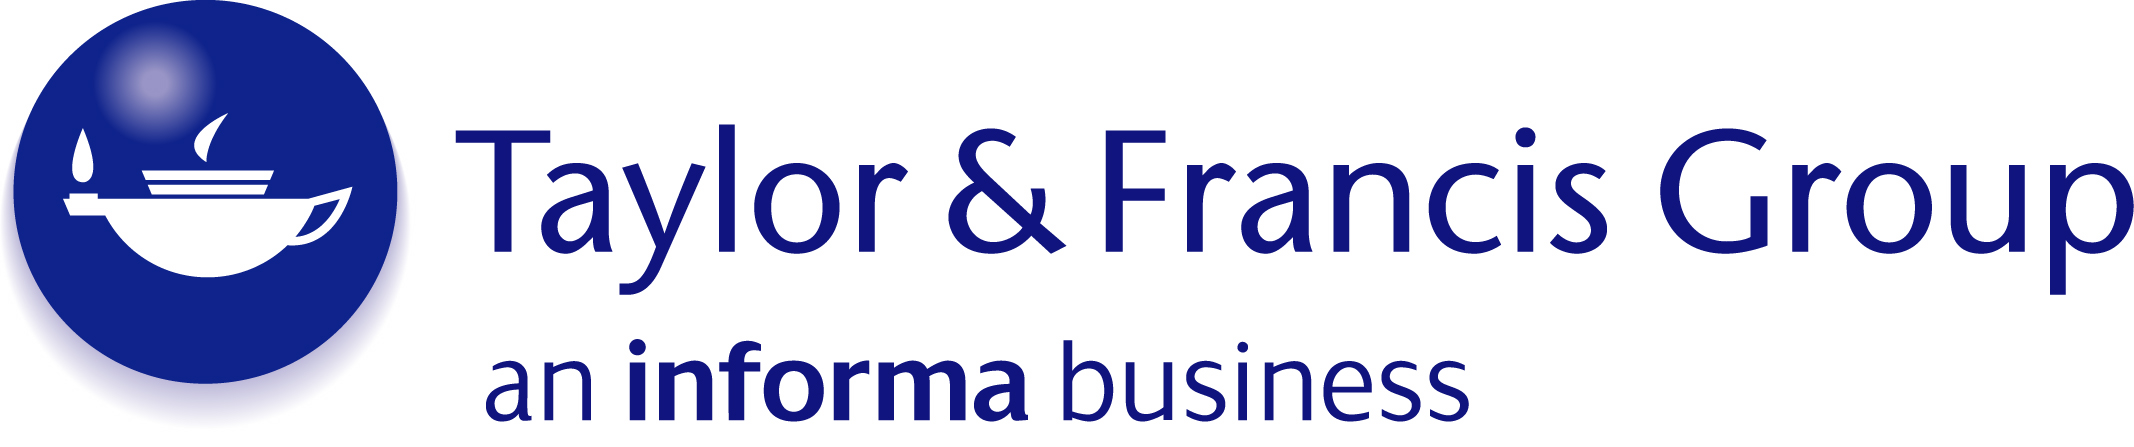 Taylor & Francis Group an Informa Business Logo